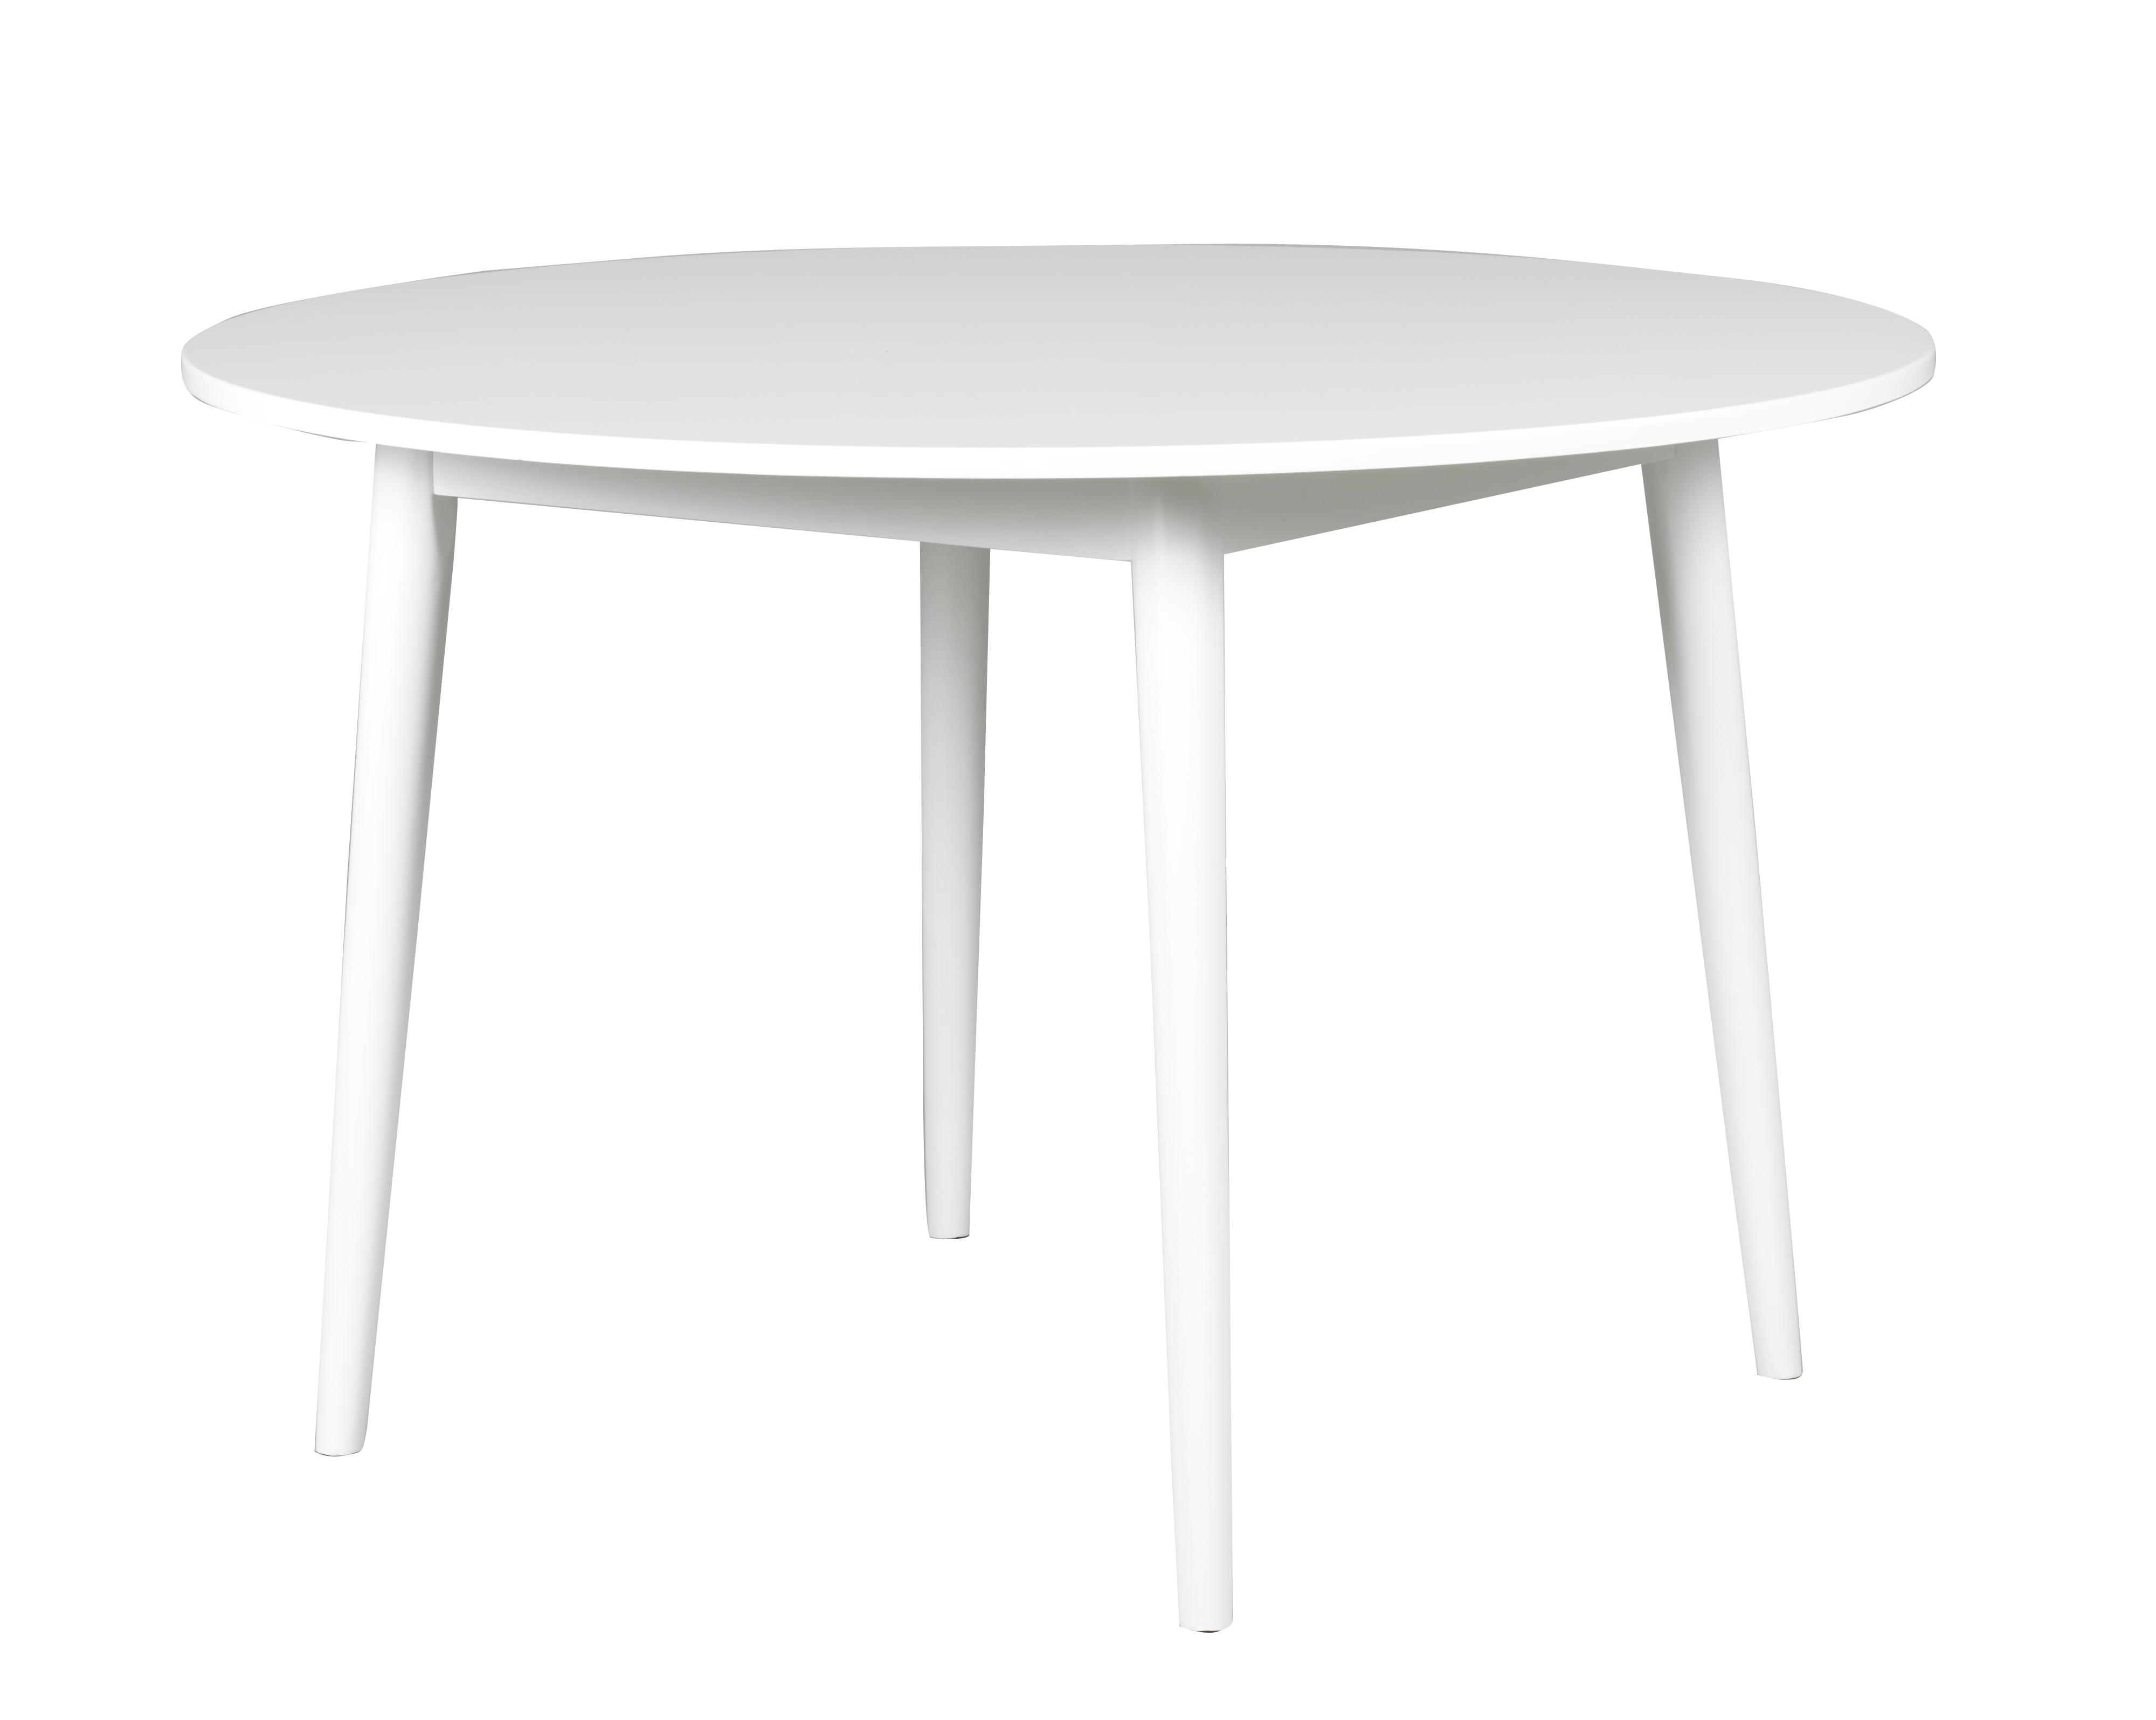 Furniture From Rowico With Regard To Popular Vienna Dining Tables (View 8 of 25)